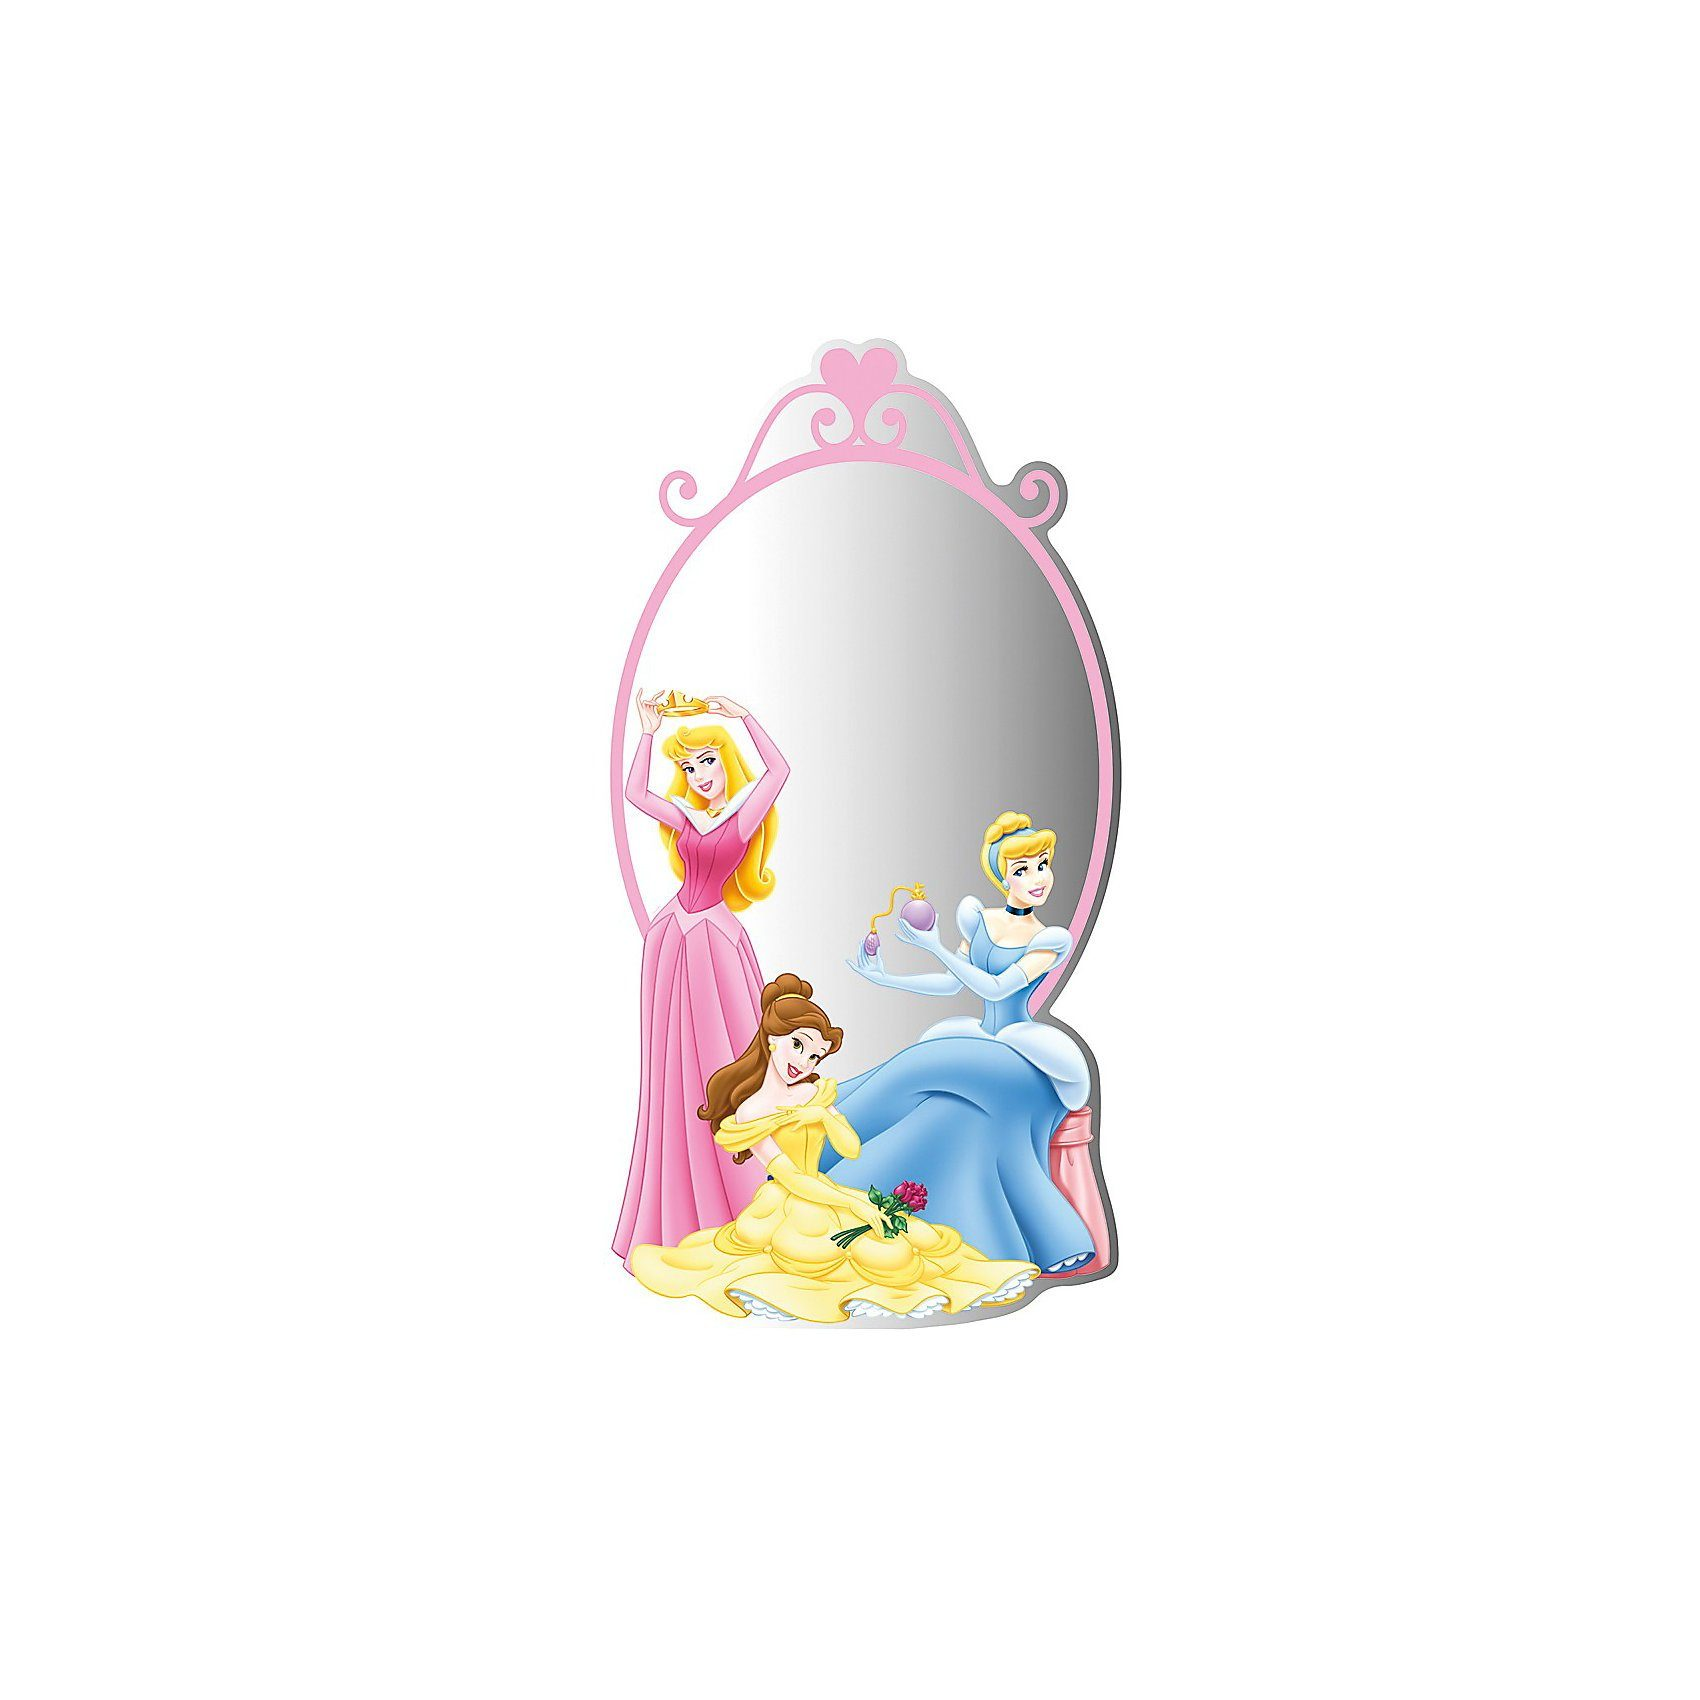 Decofun Spiegel Disney Princess, 30 x 50 cm